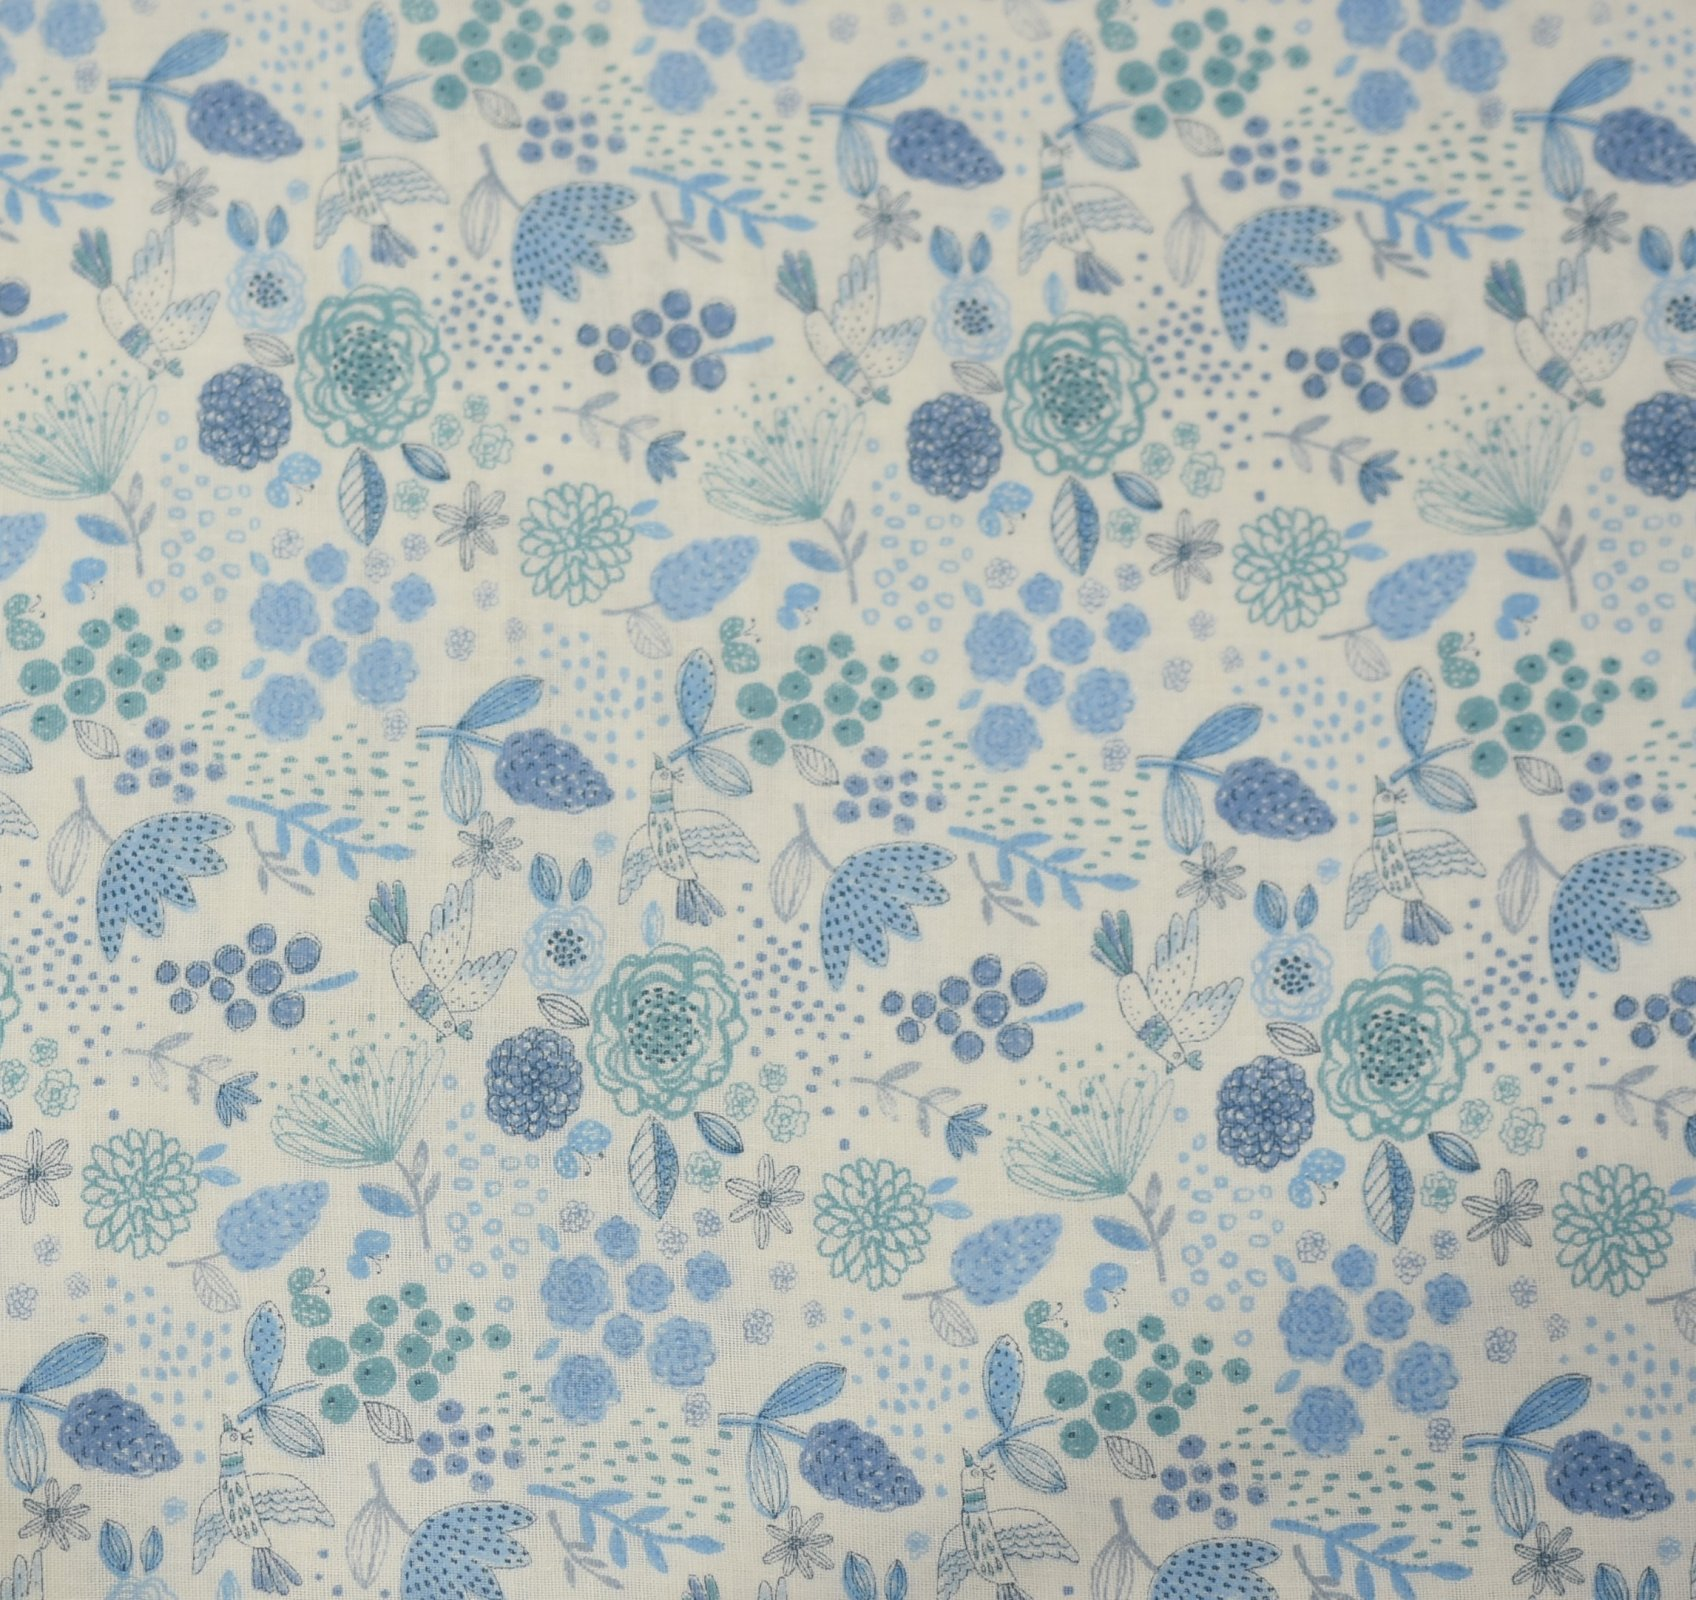 Japanese - Double Gauze - Soft Floral - Blue